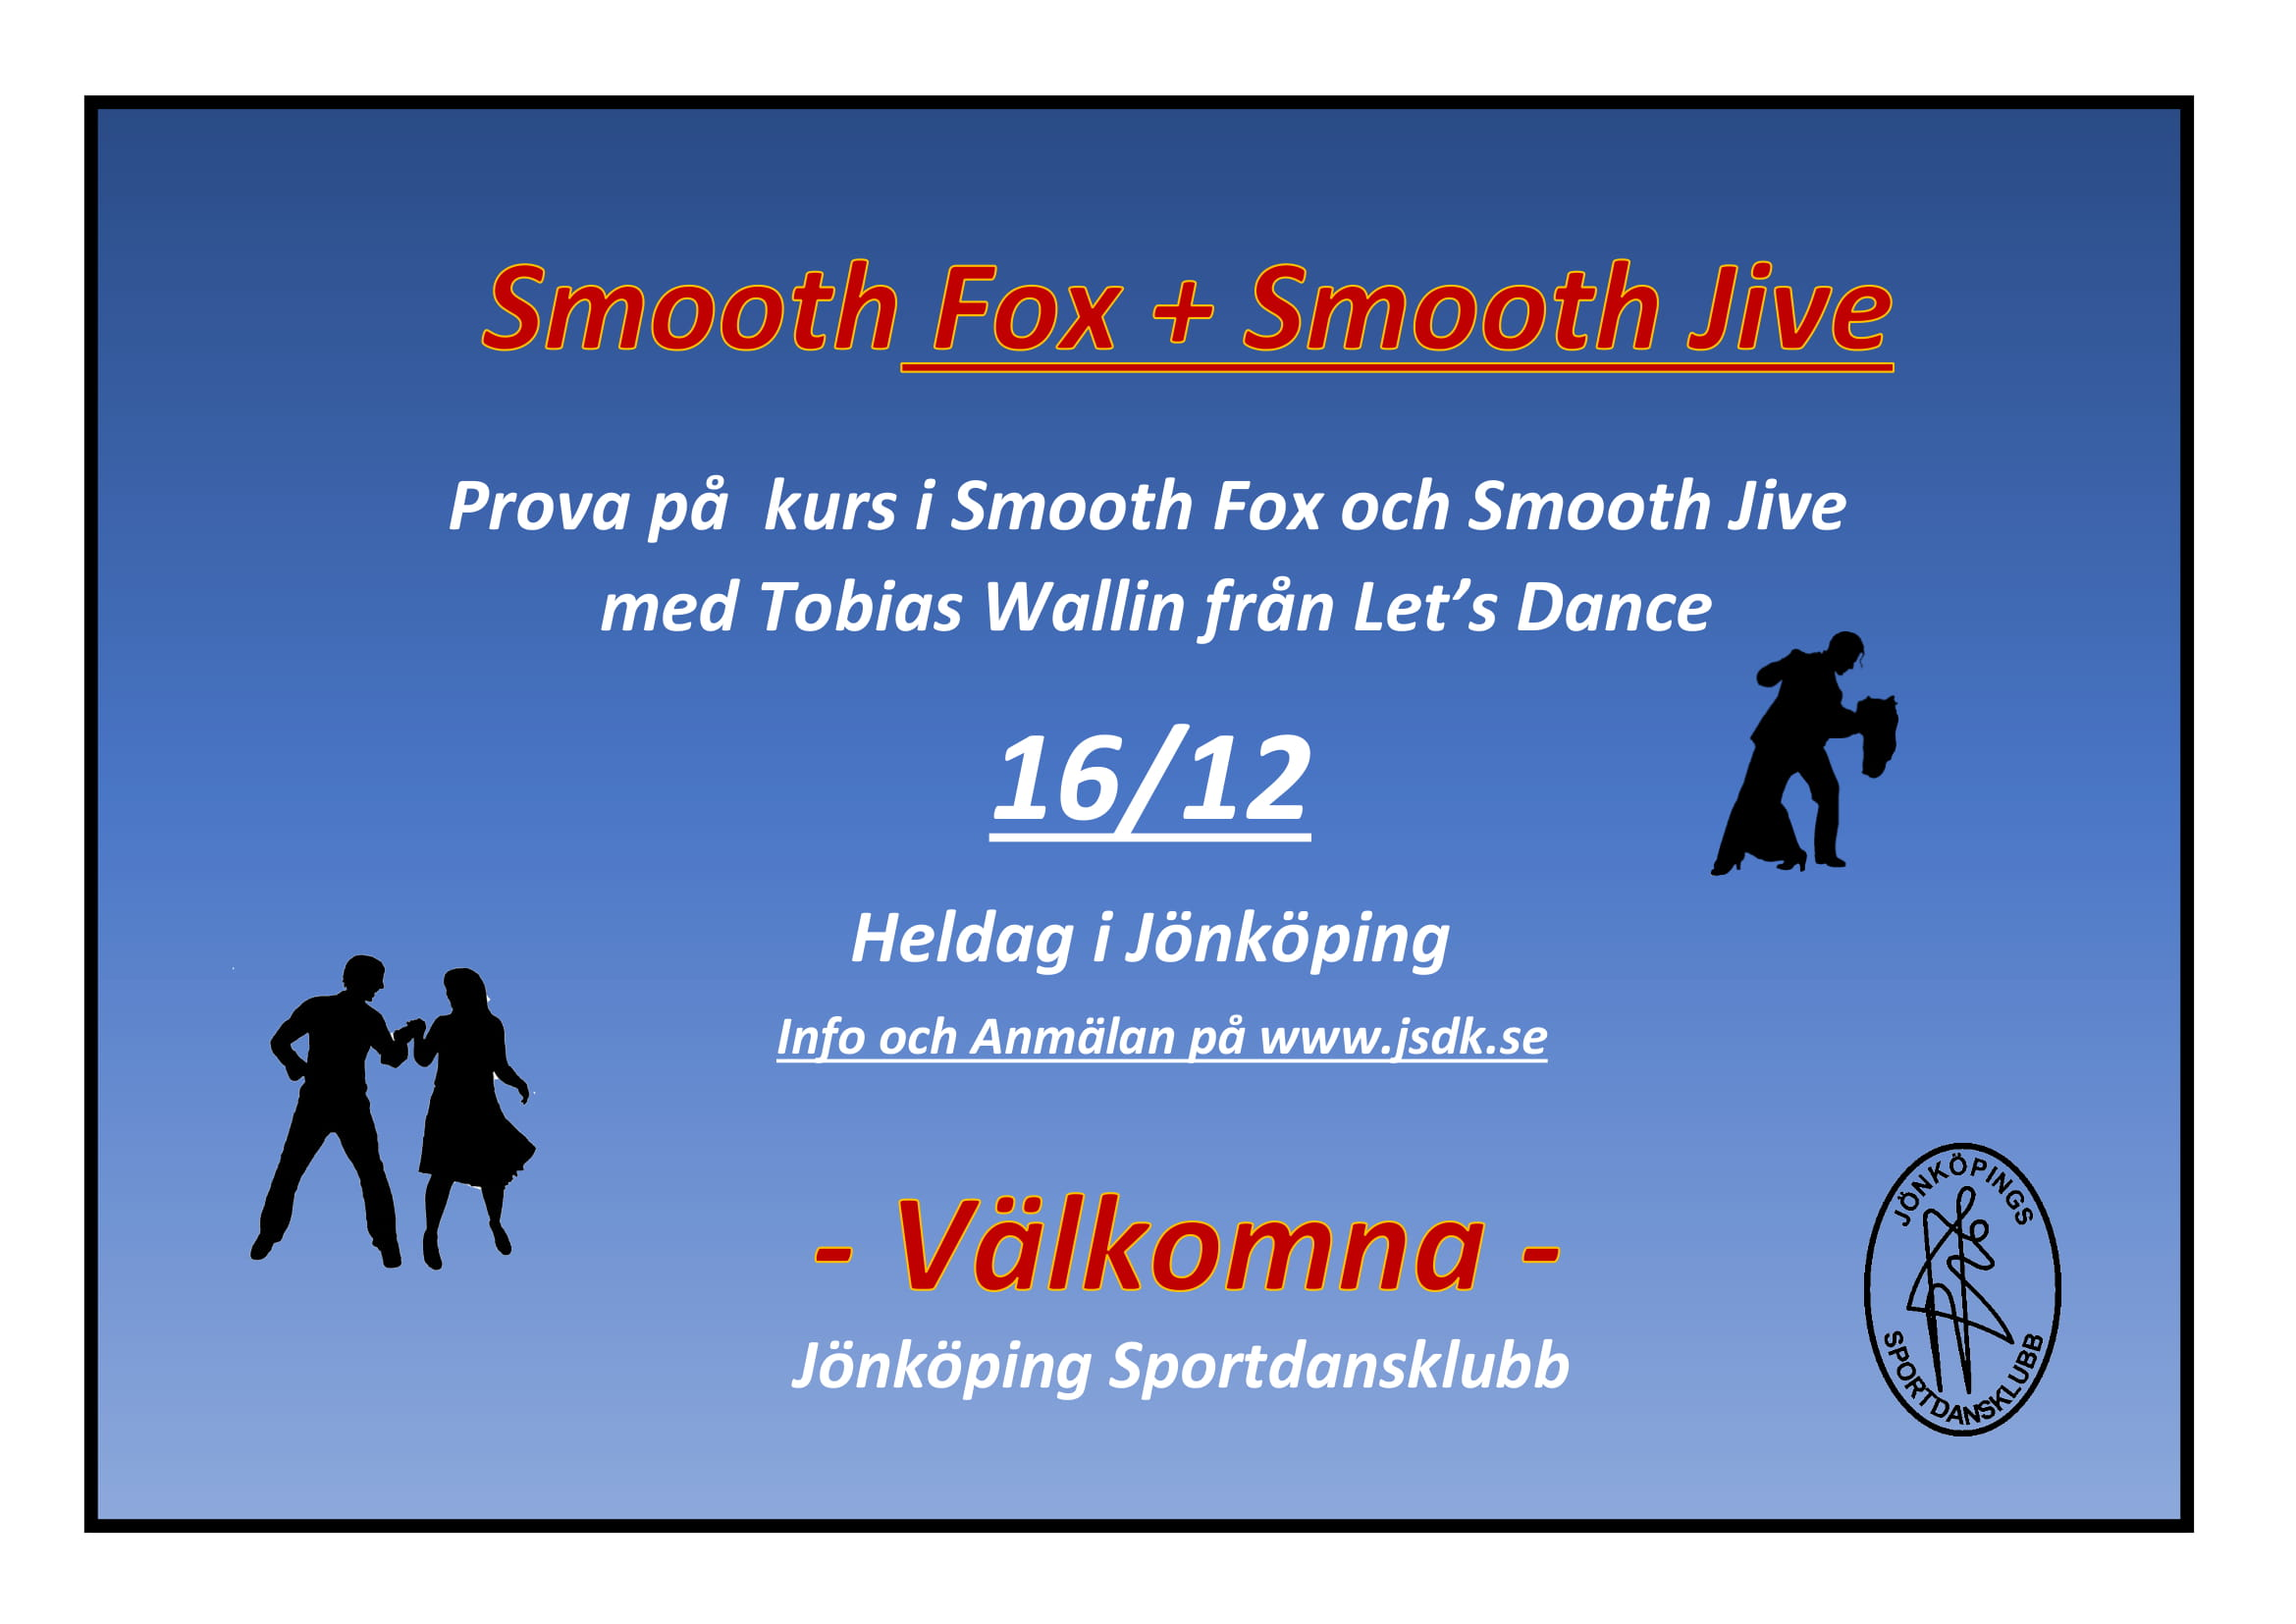 Smooth Fox och Smooth Jive